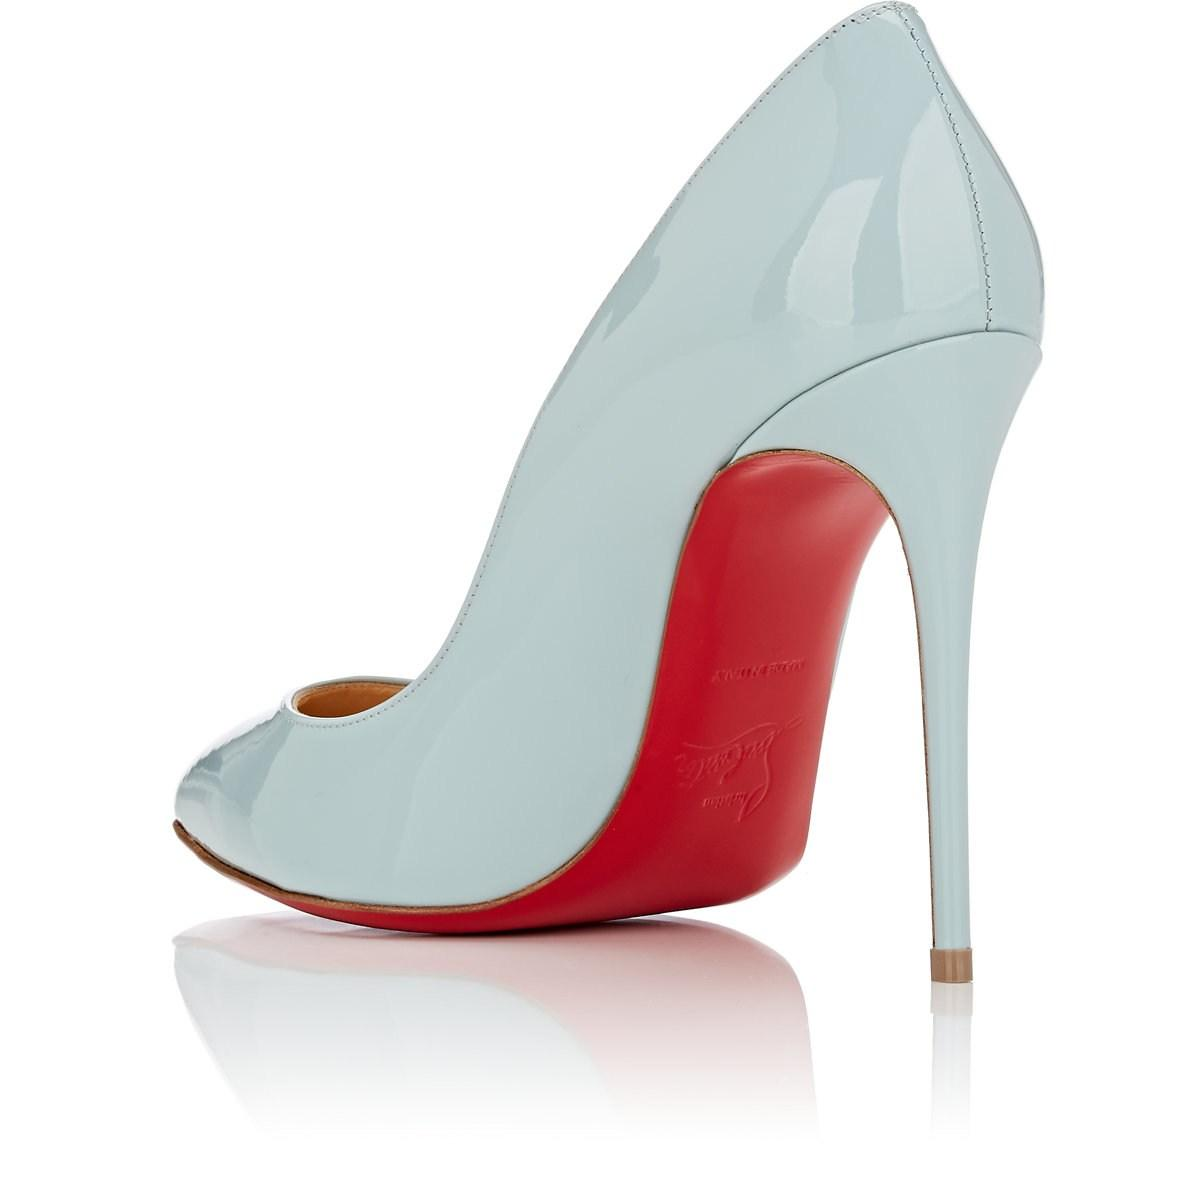 3f72ece4cc85 Christian Louboutin Pigalle Follies Patent Leather Pumps in Blue - Lyst